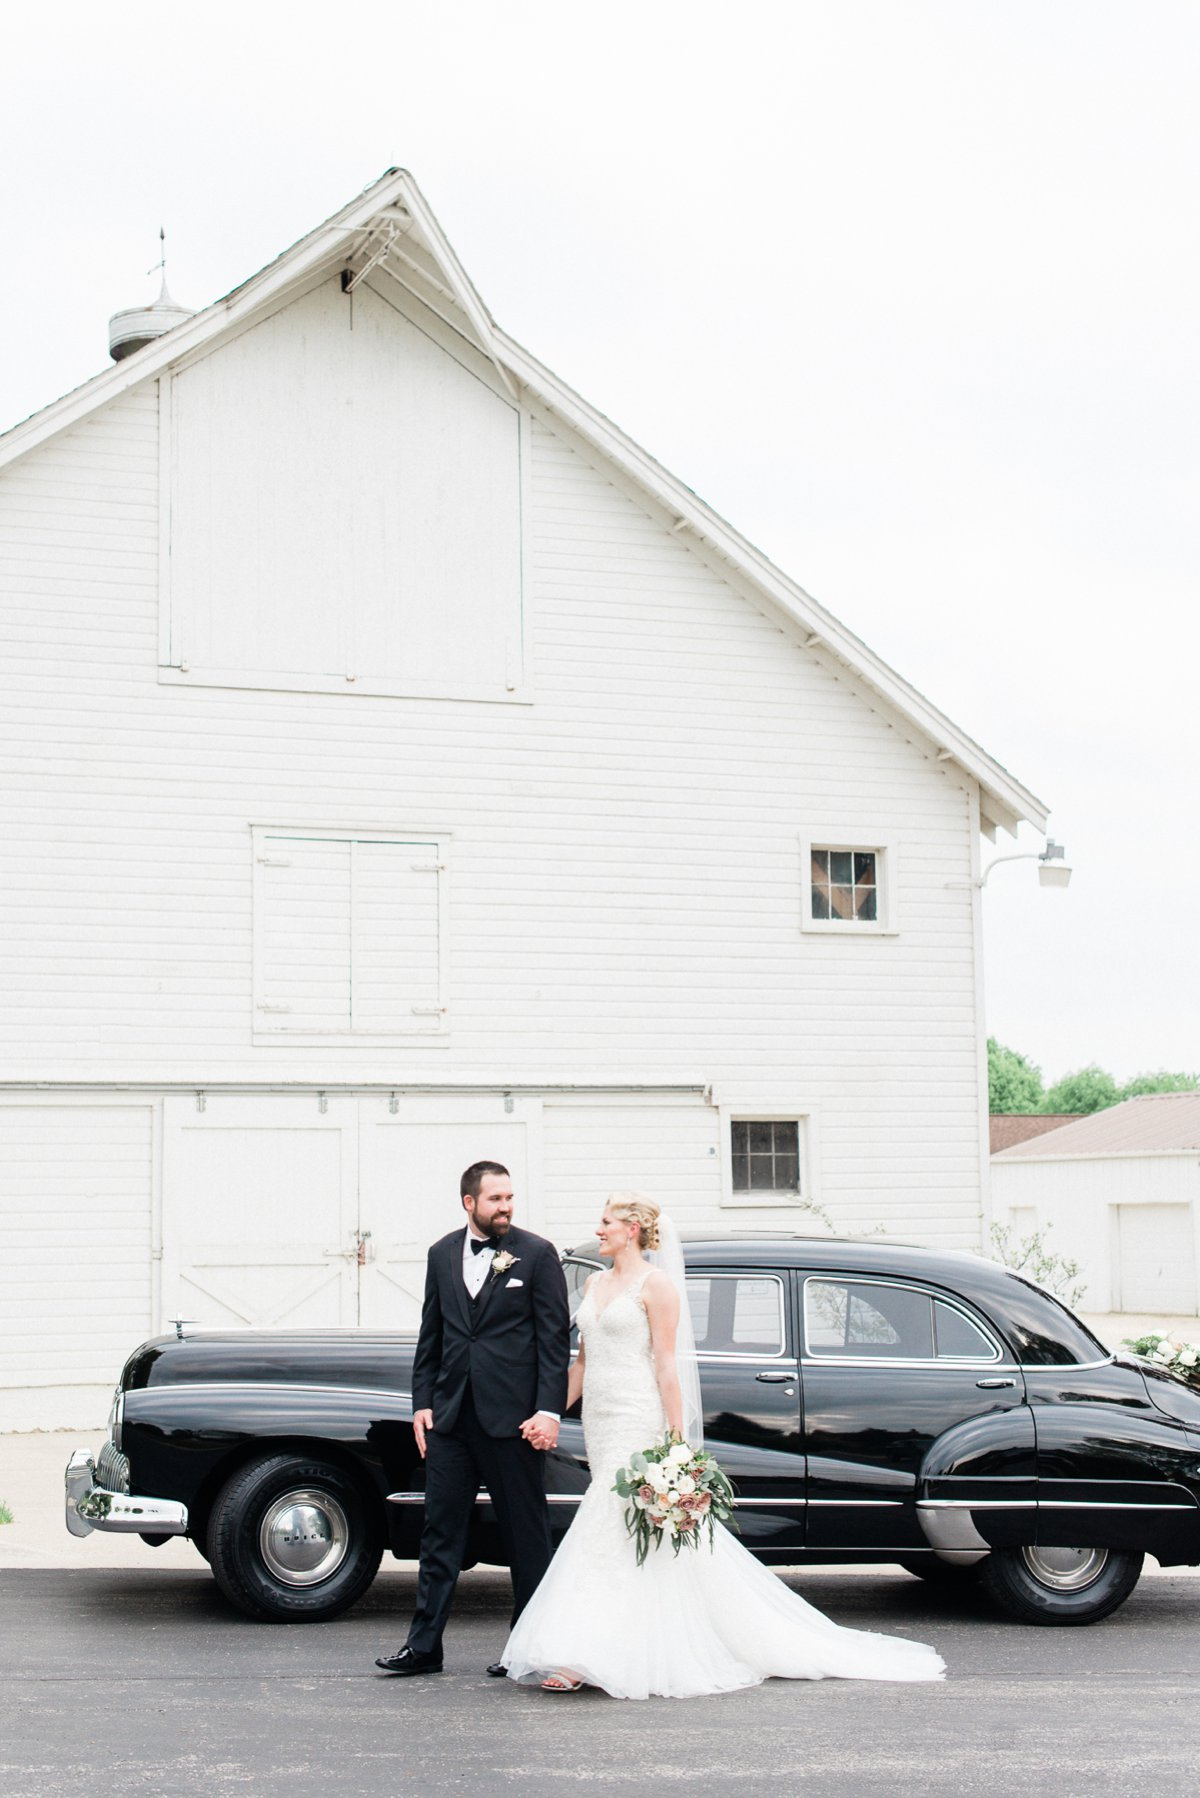 Where to take engagement + wedding photos in Chicago Suburbs - Danada House